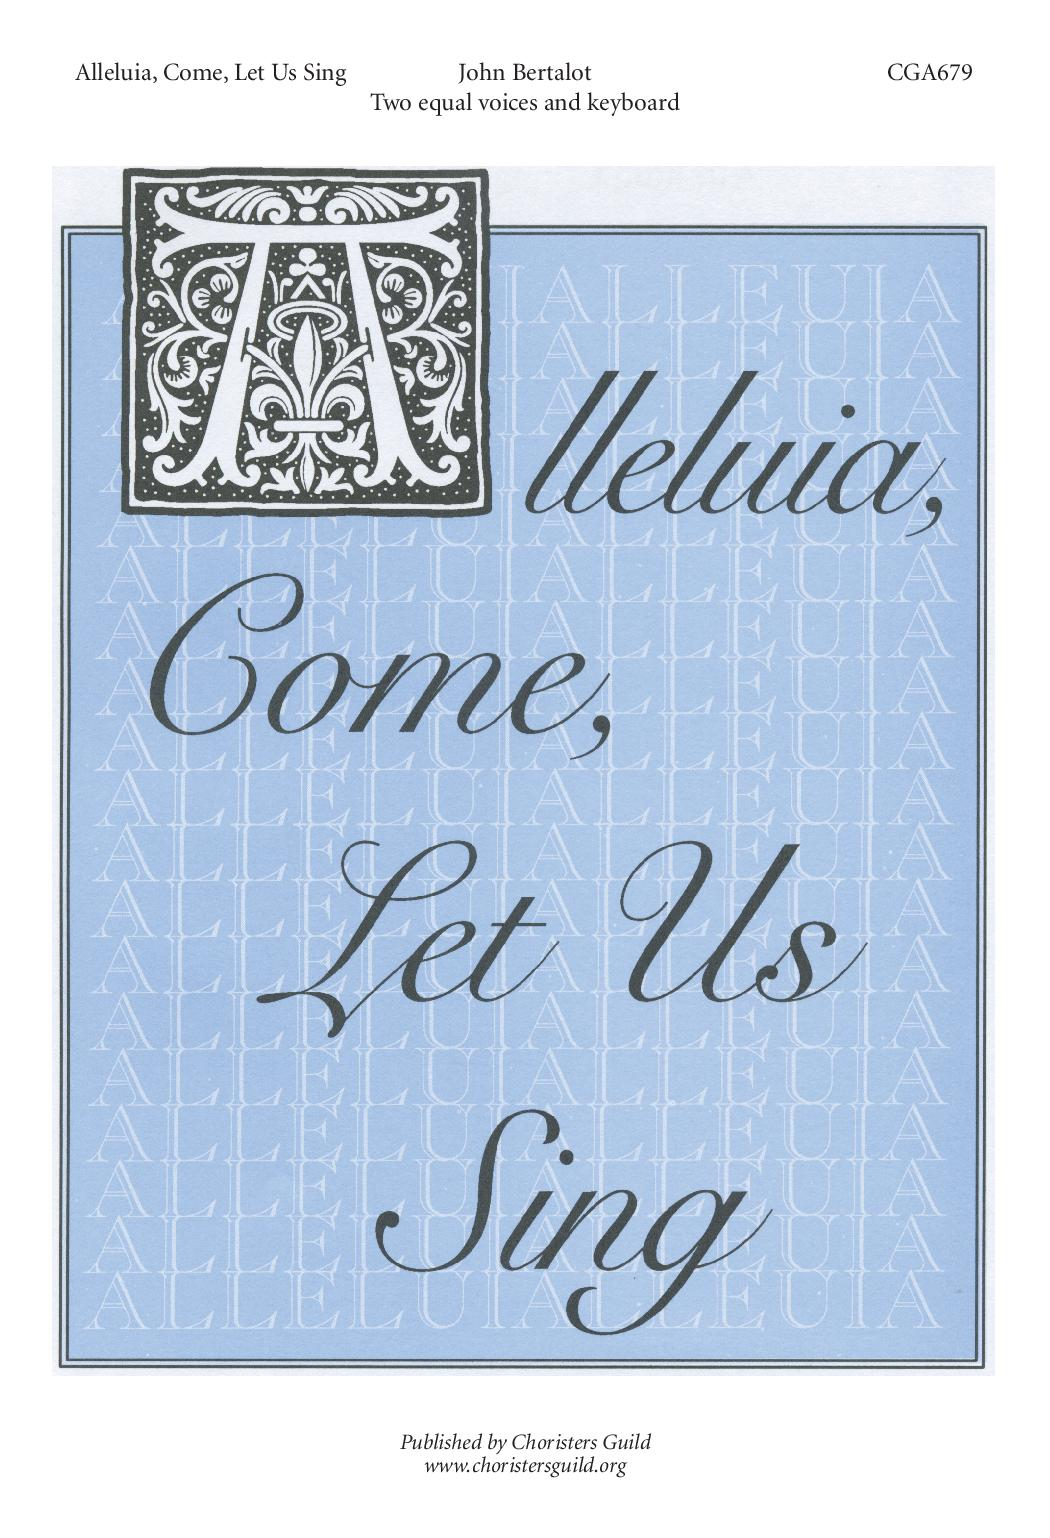 Alleluia, Come, Let Us Sing